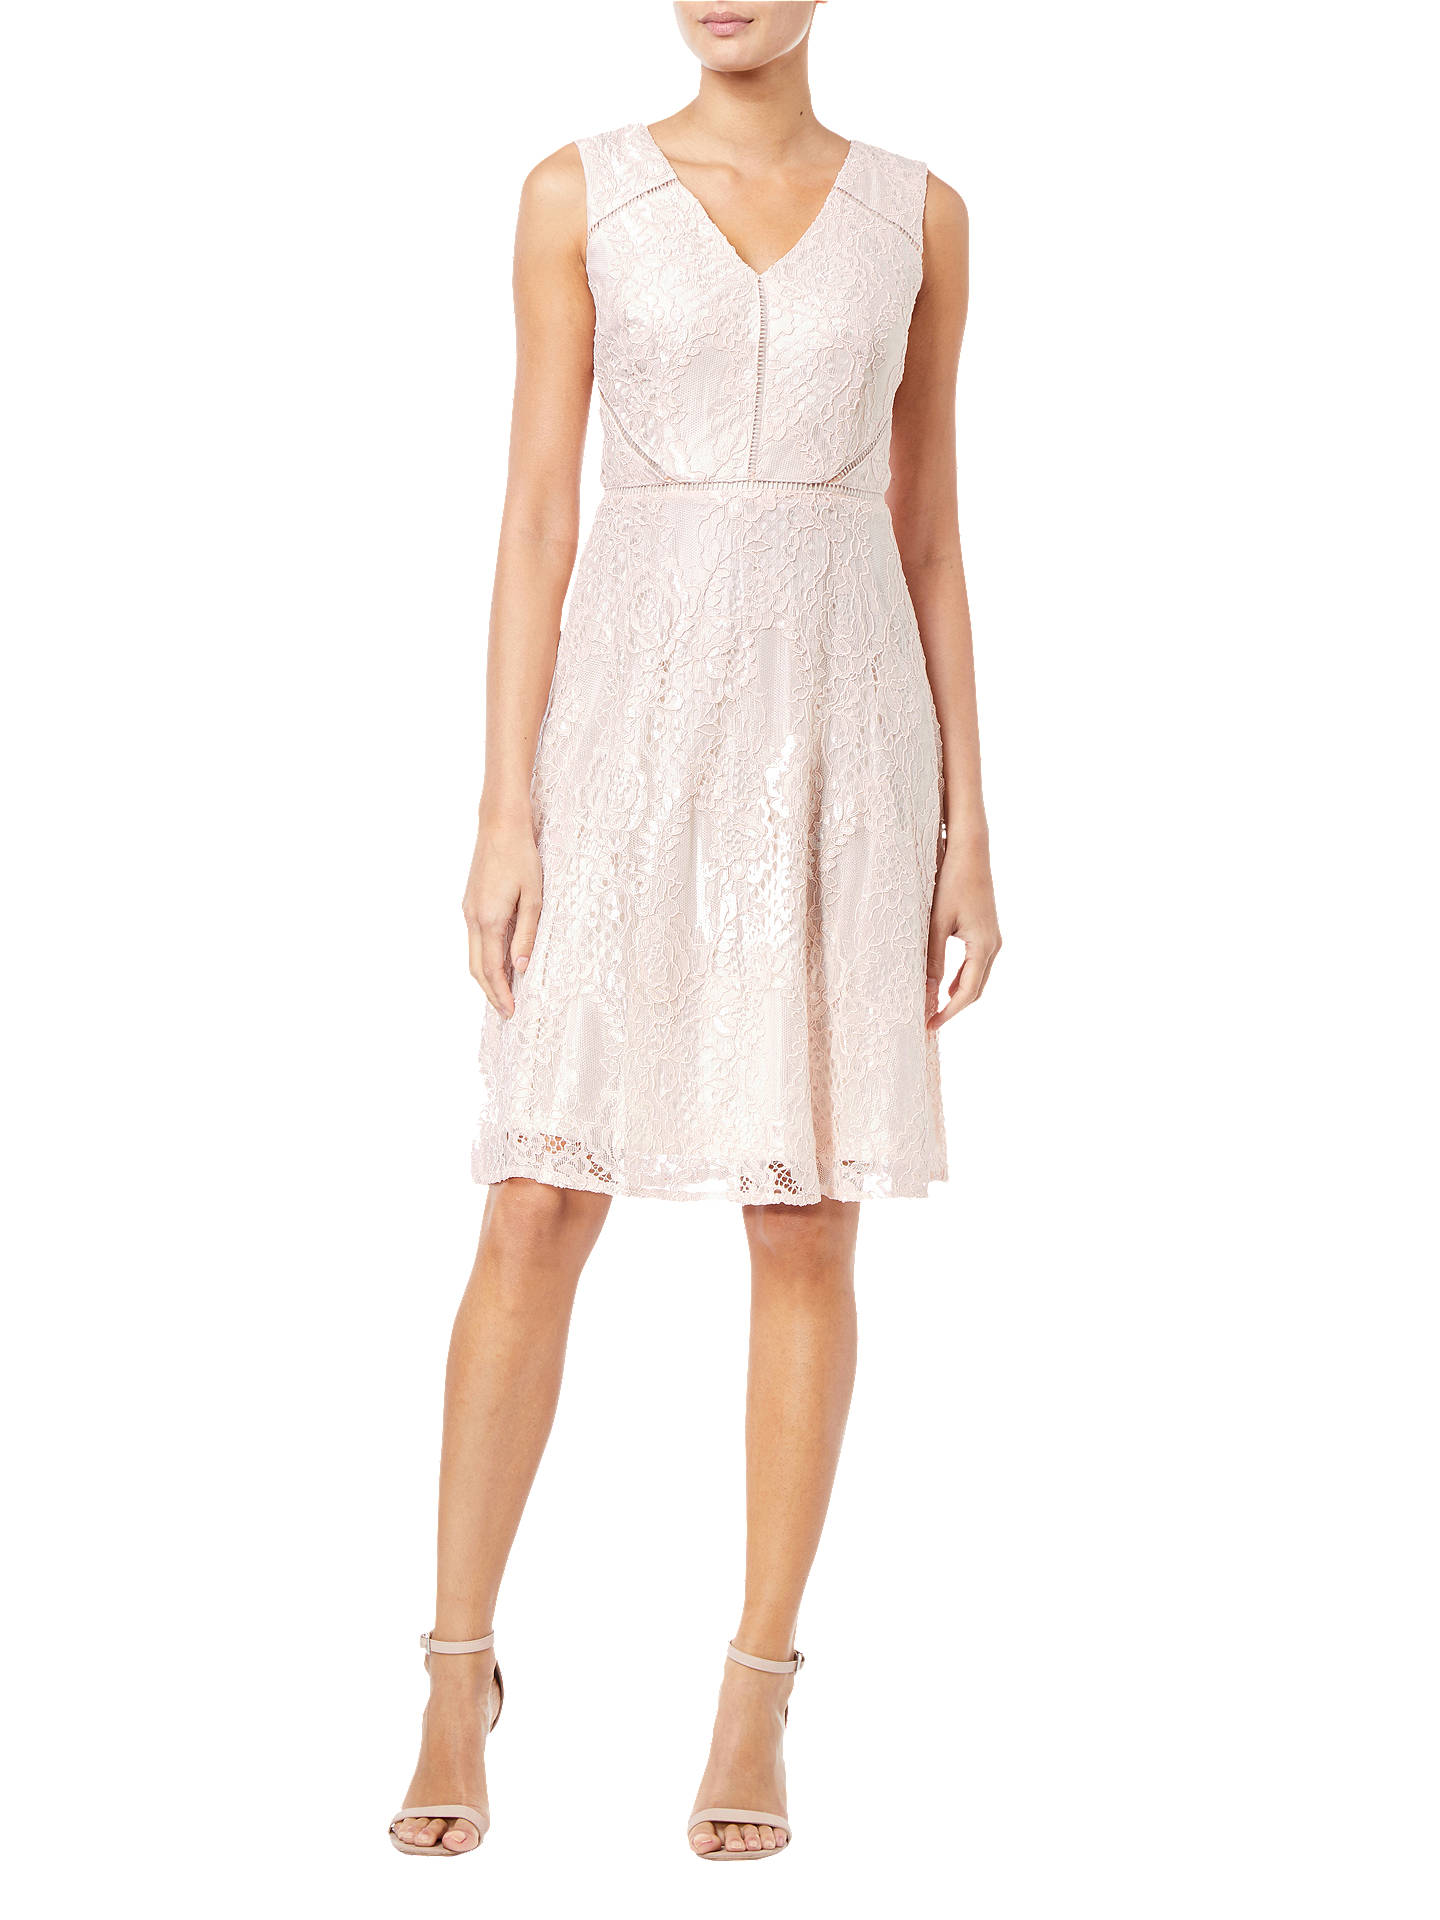 BuyAdrianna Papell Lace Overlay Flared Dress, Blush/Almond, 8 Online at johnlewis.com